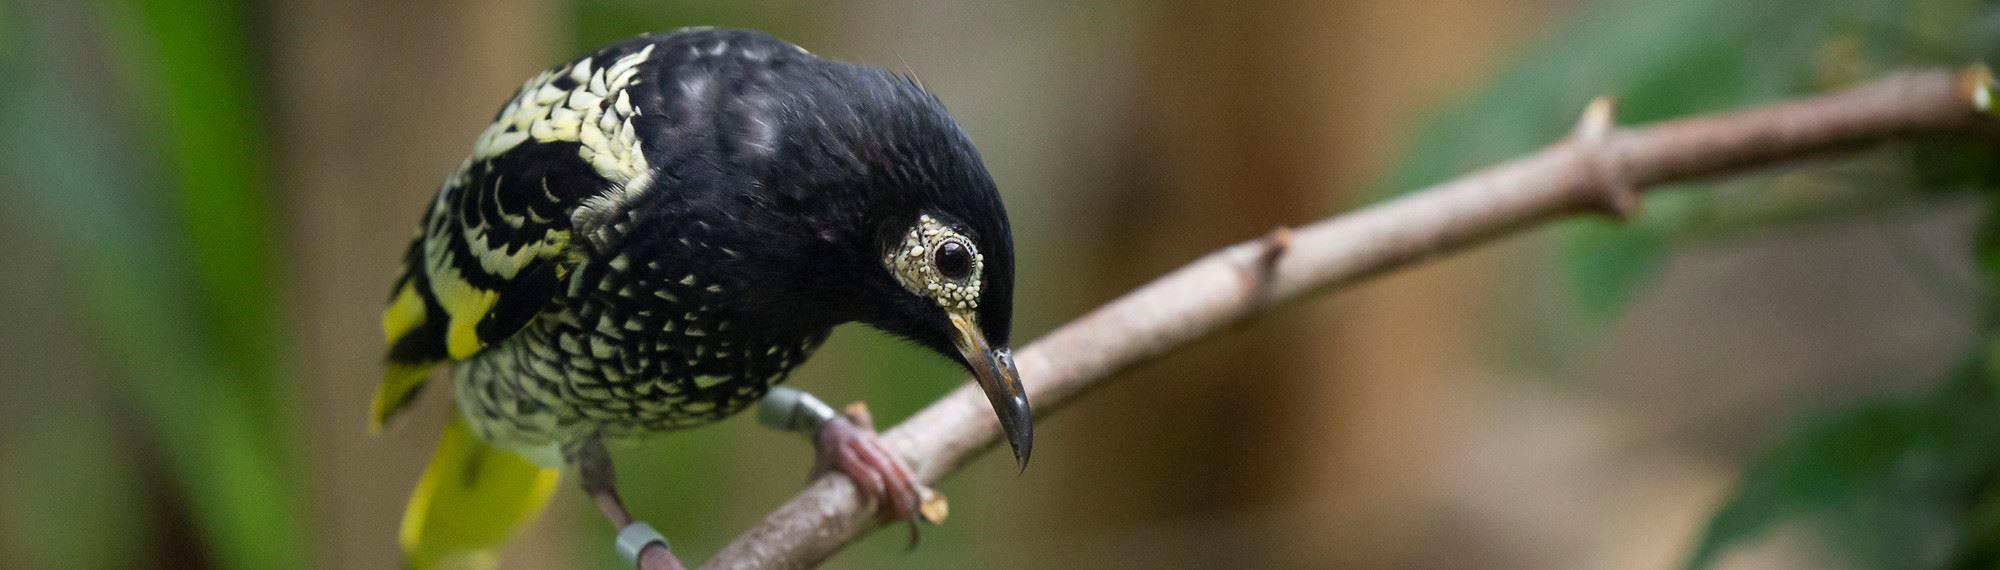 Regent Honeyeater bird on a branch looking down. It is mostly black with yellow speckles.